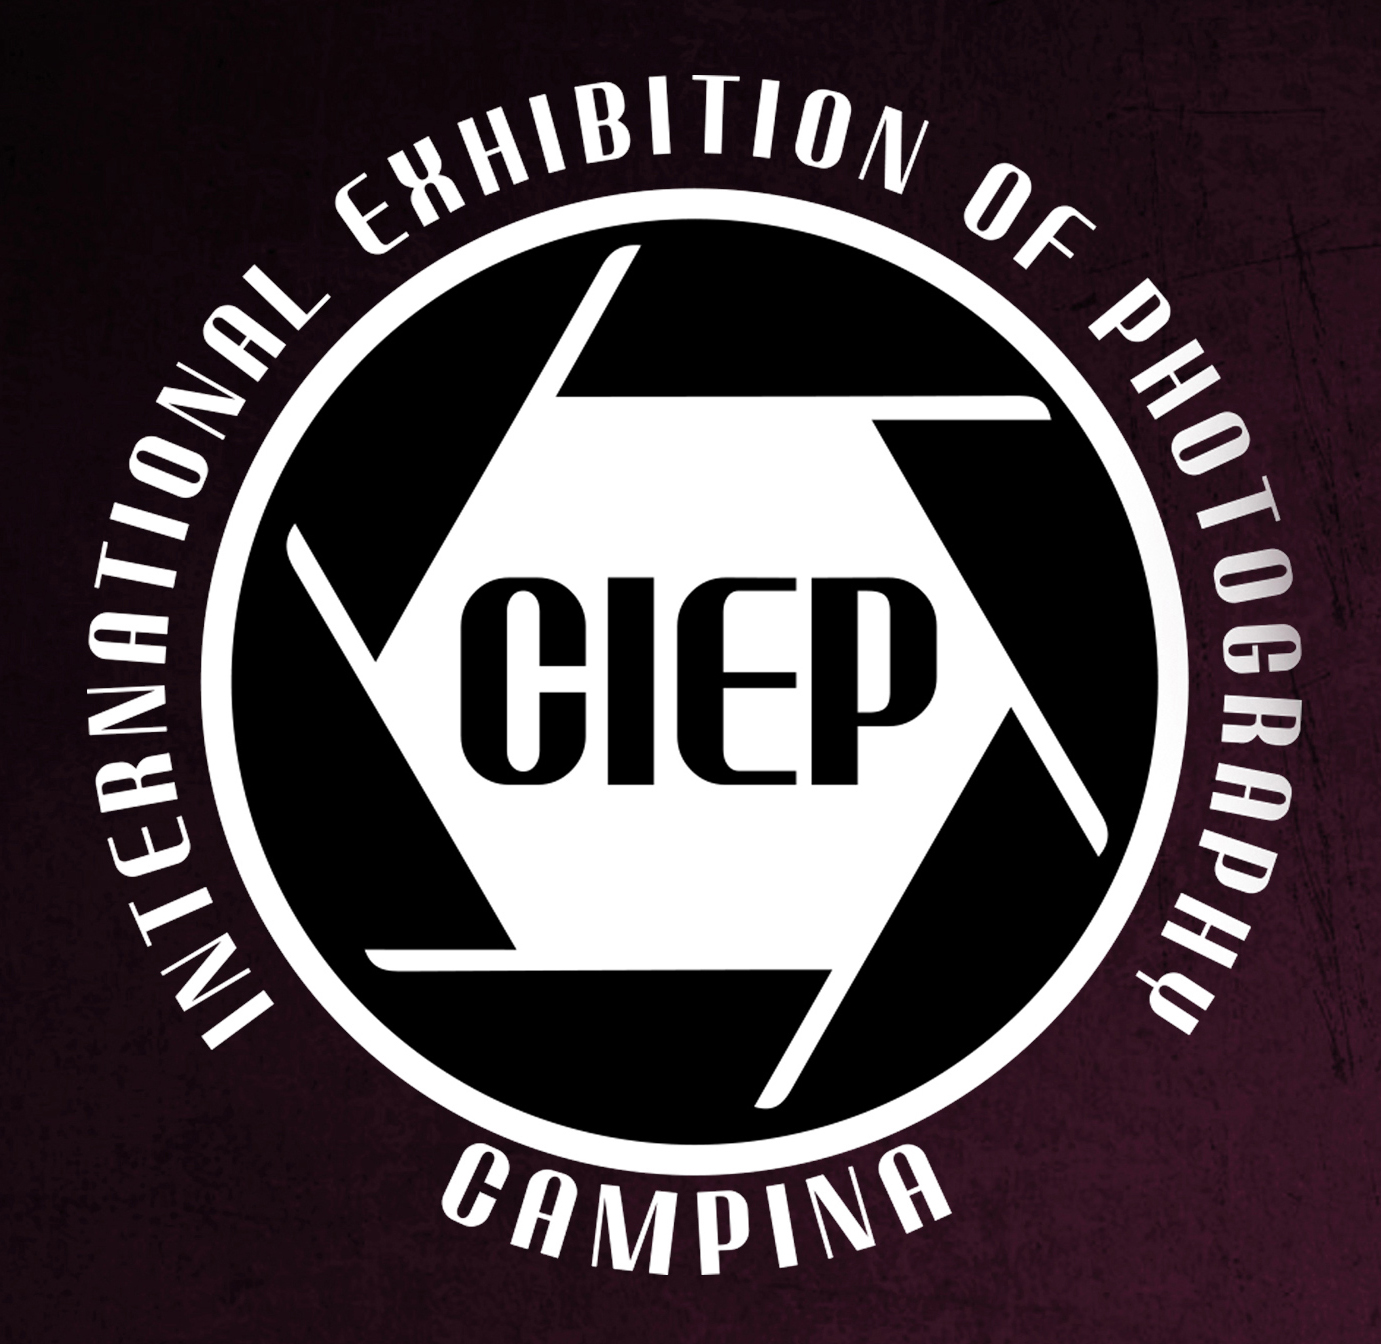 4th CAMPINA 2019 International Exhibition of Photography, Romania - logo